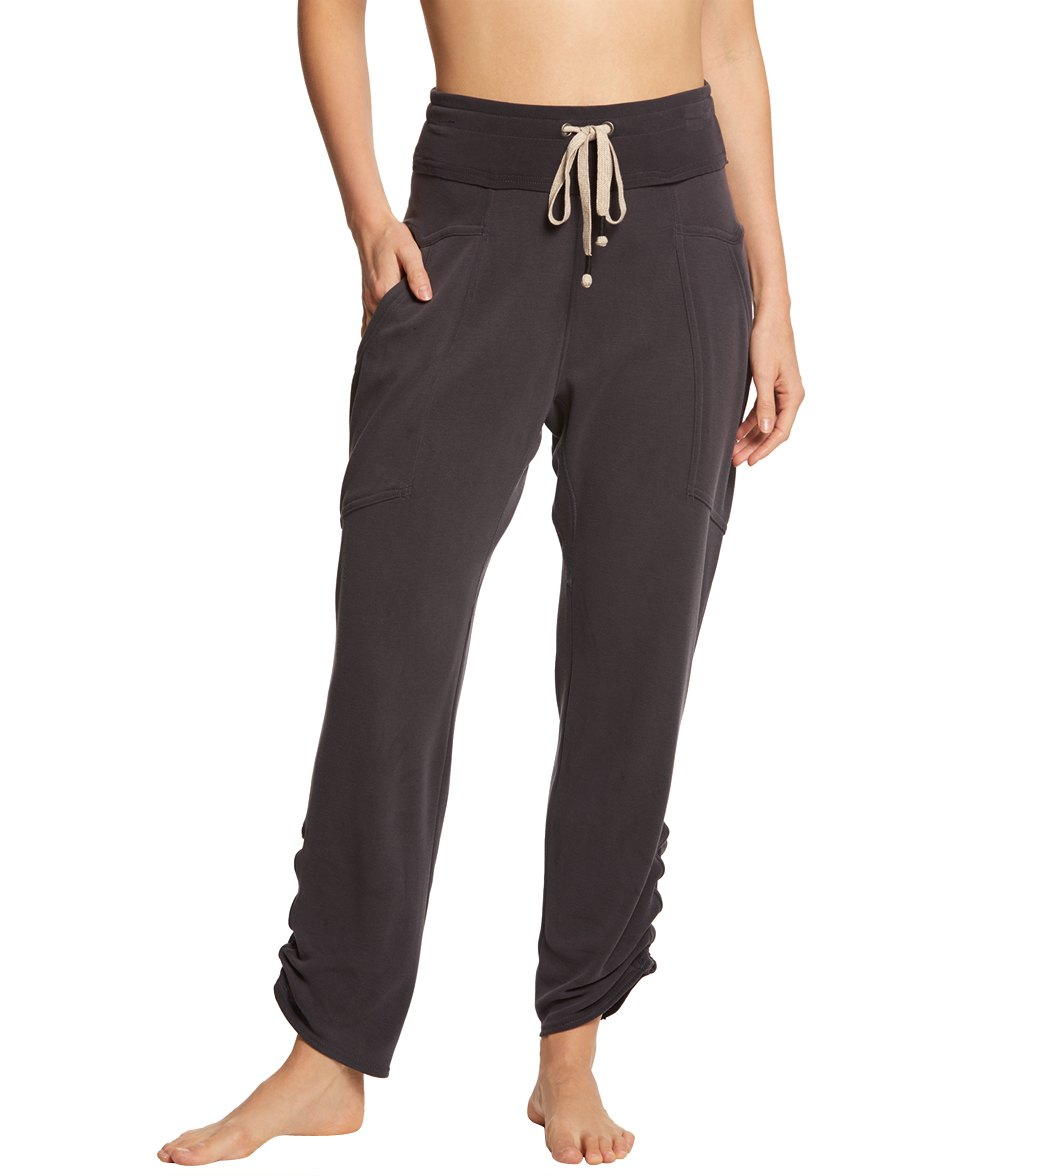 Free People Movement Ready Go Pants - Black Spandex